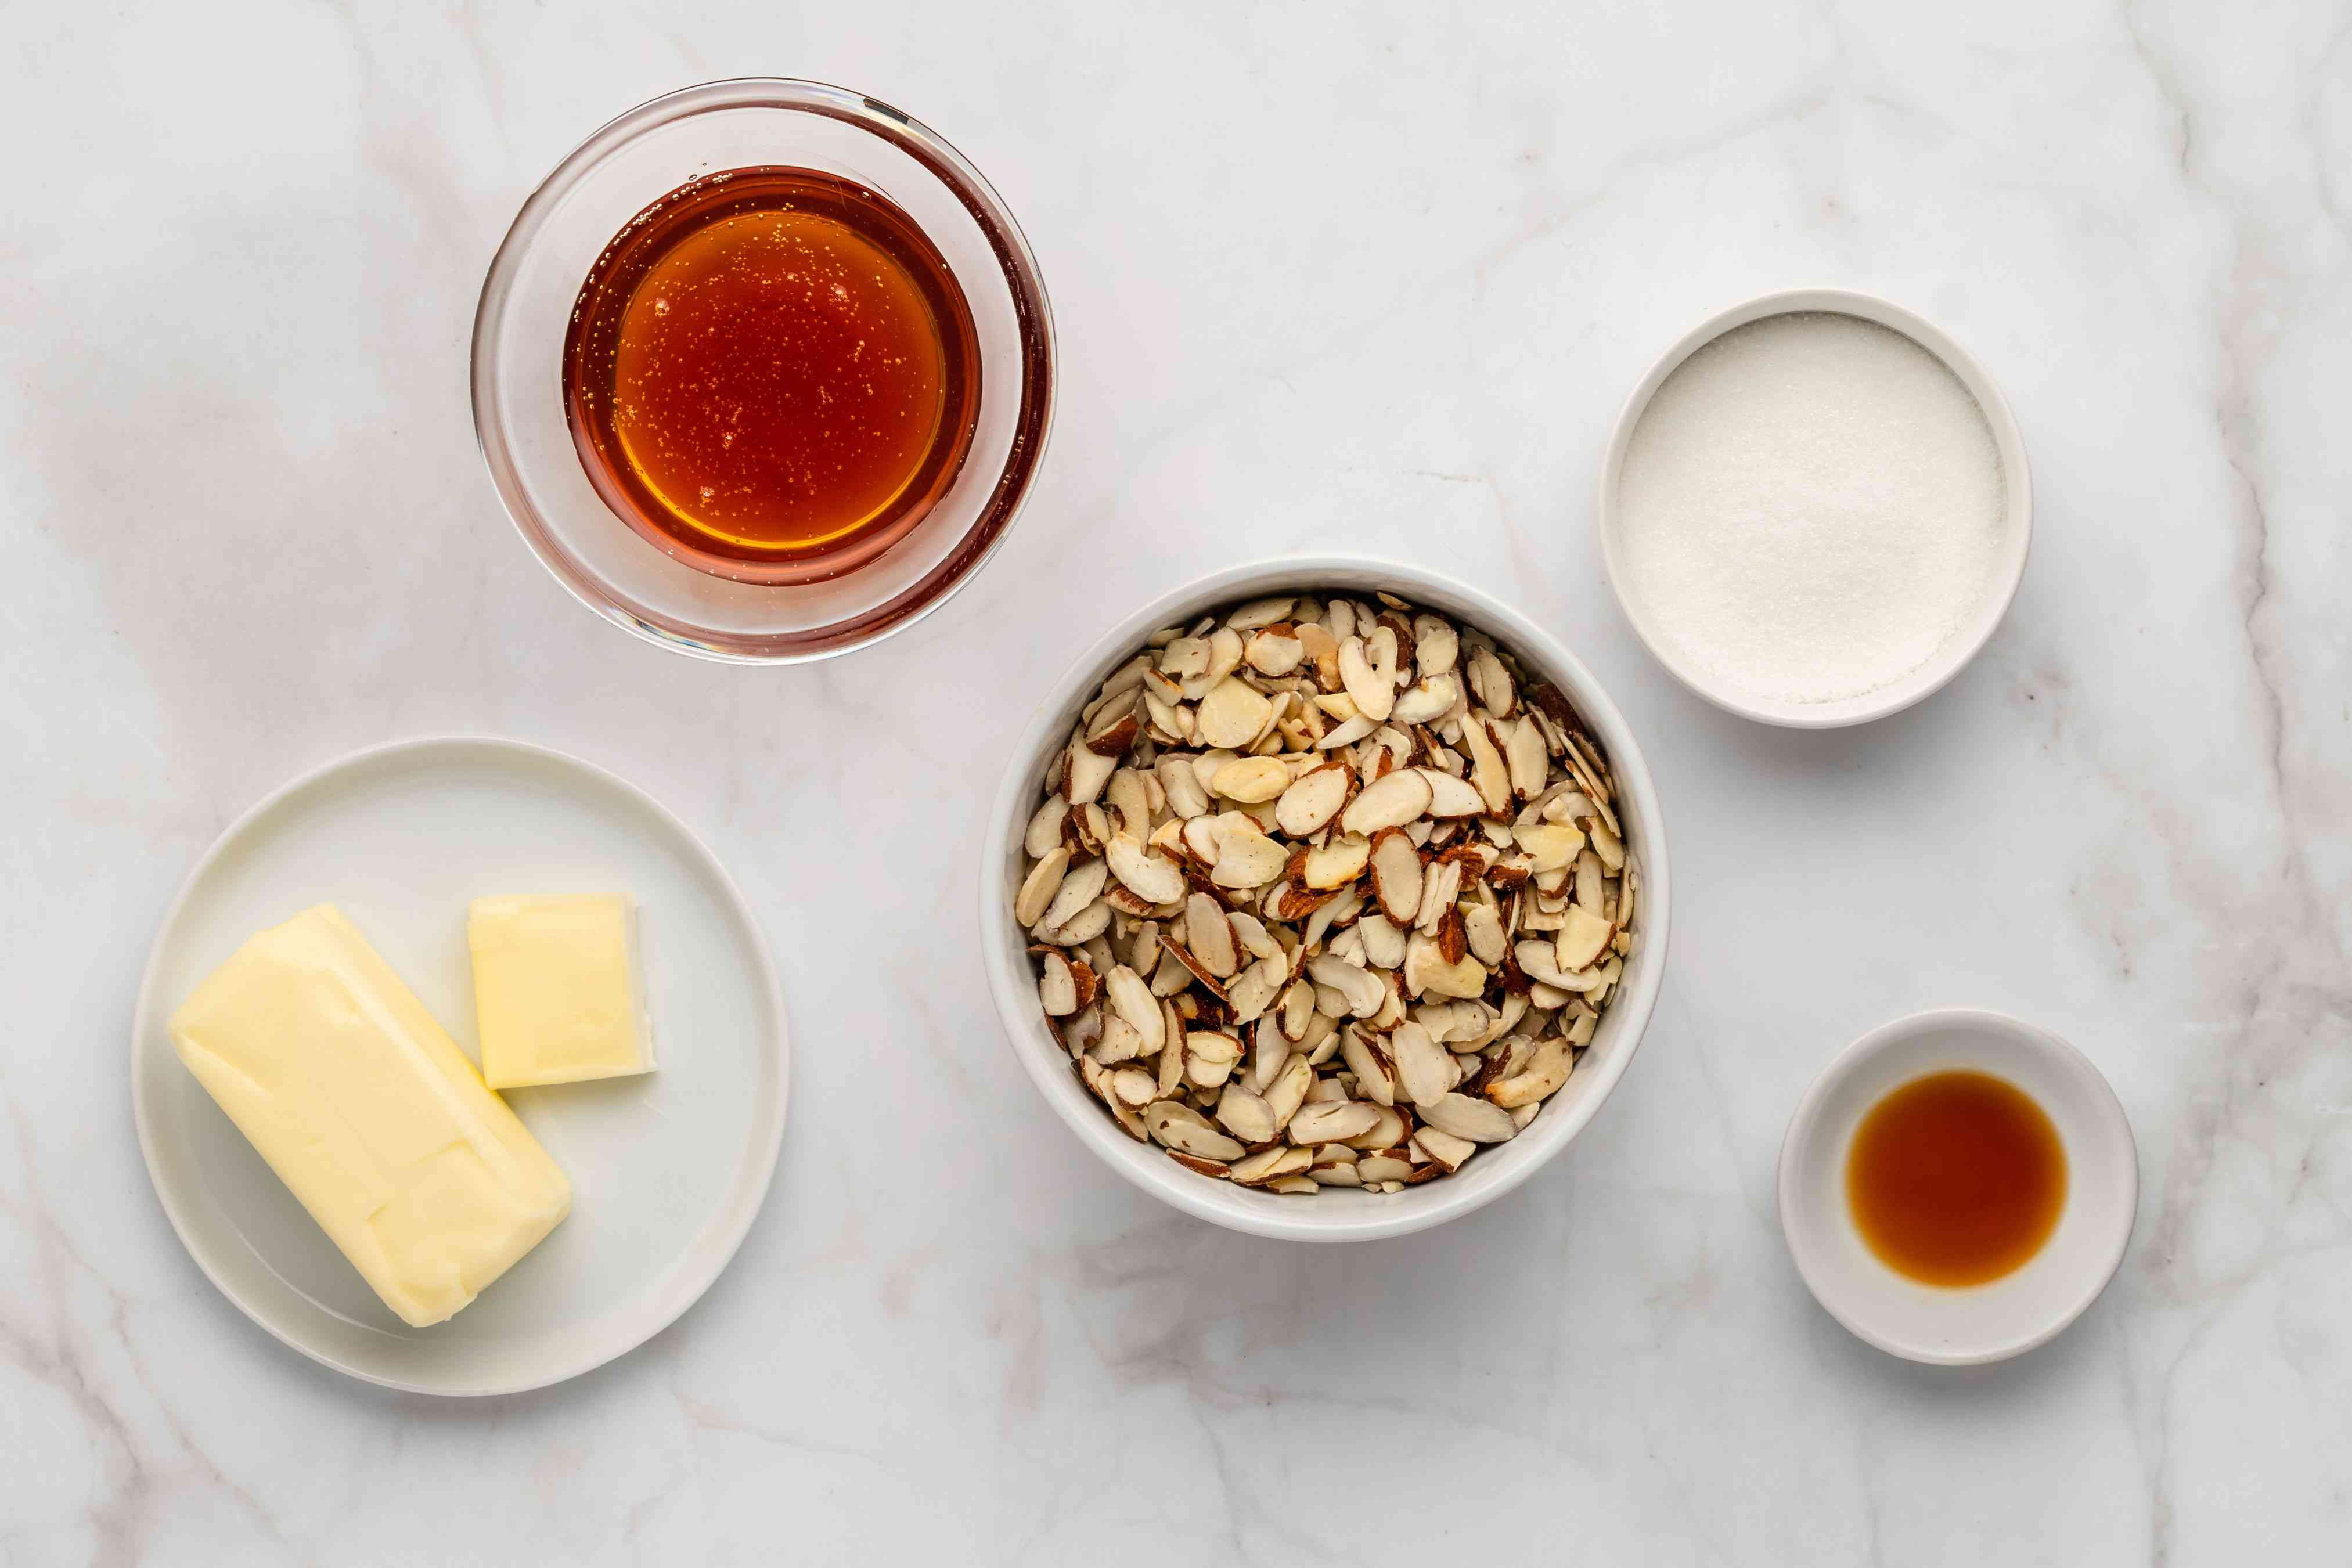 Almond topping ingredients for bee sting cake